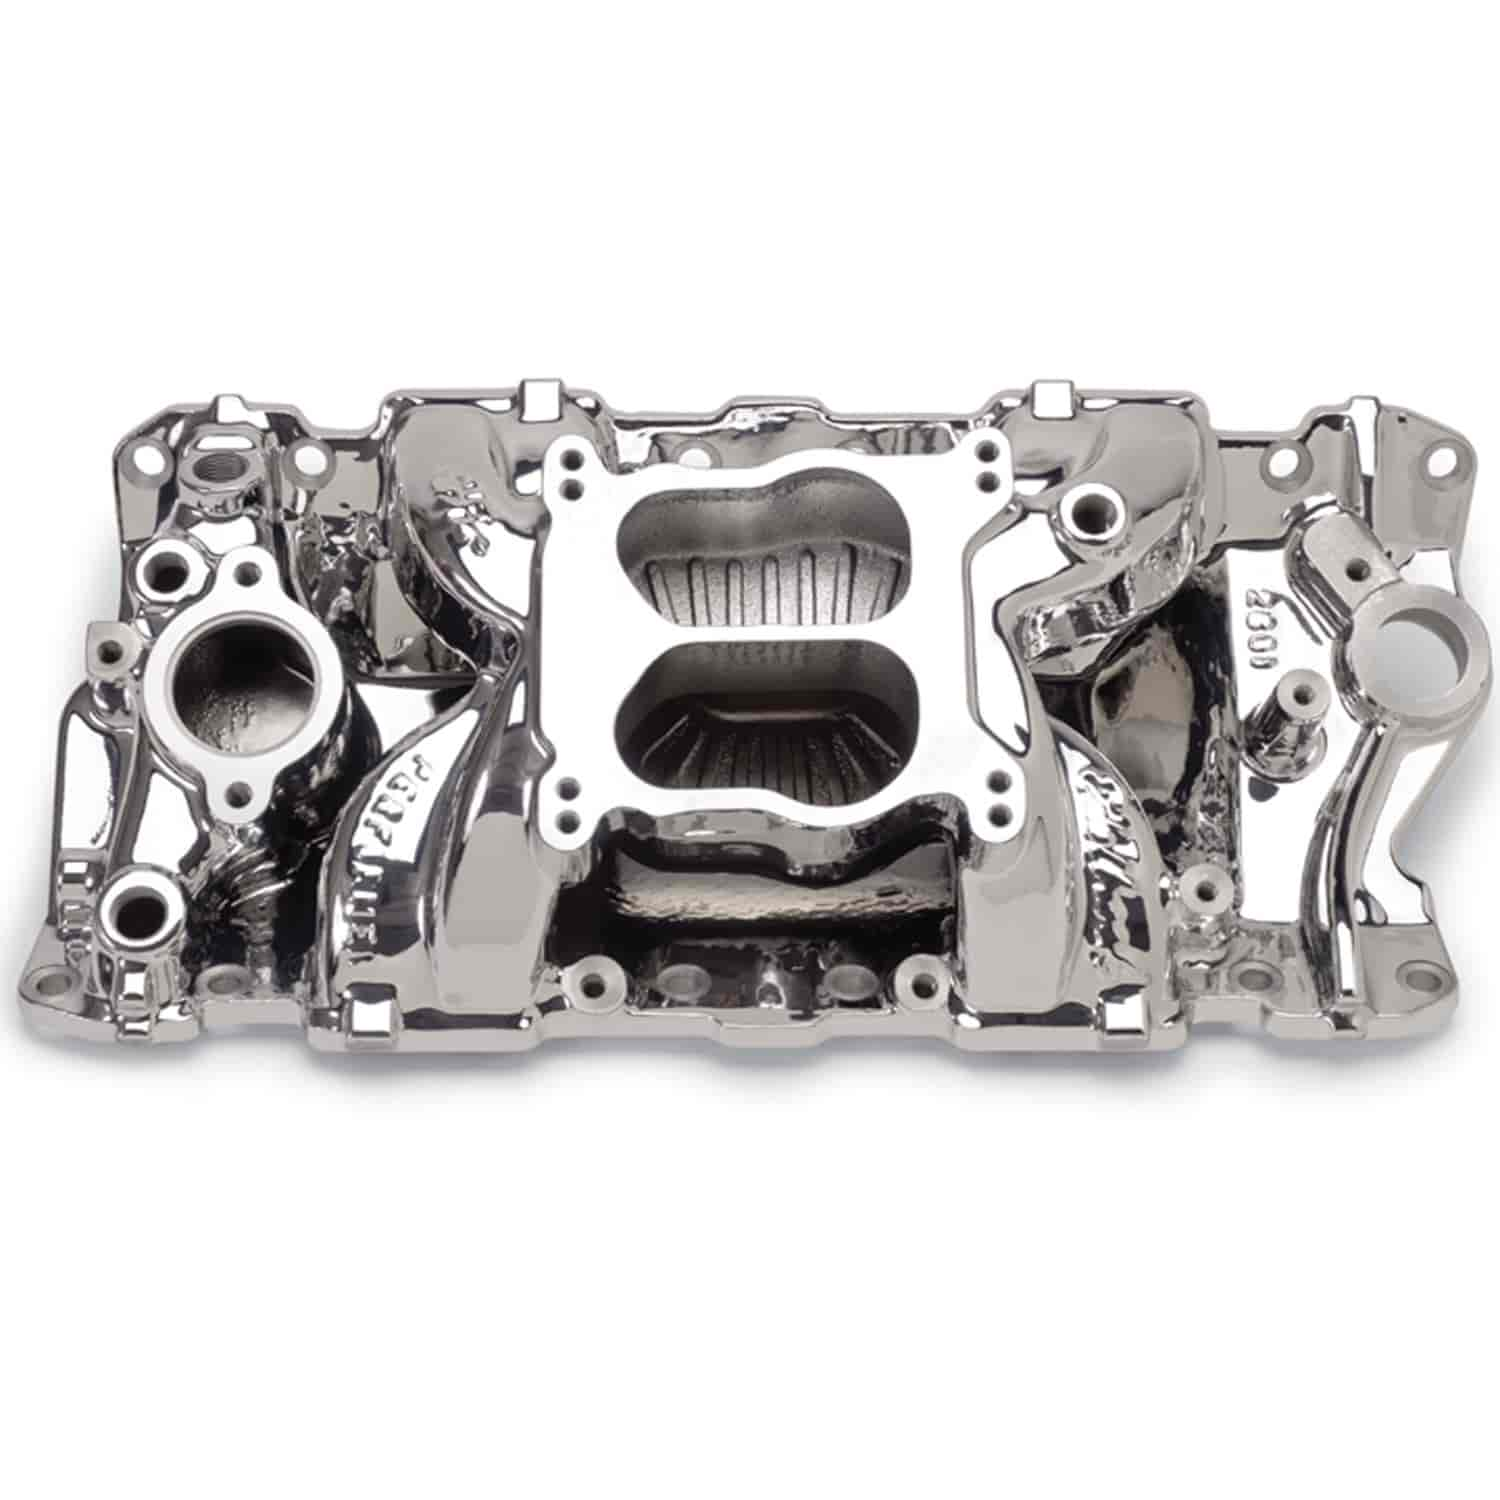 Edelbrock 26014 - Edelbrock Performer Air-Gap Intake Manifold for Chevy